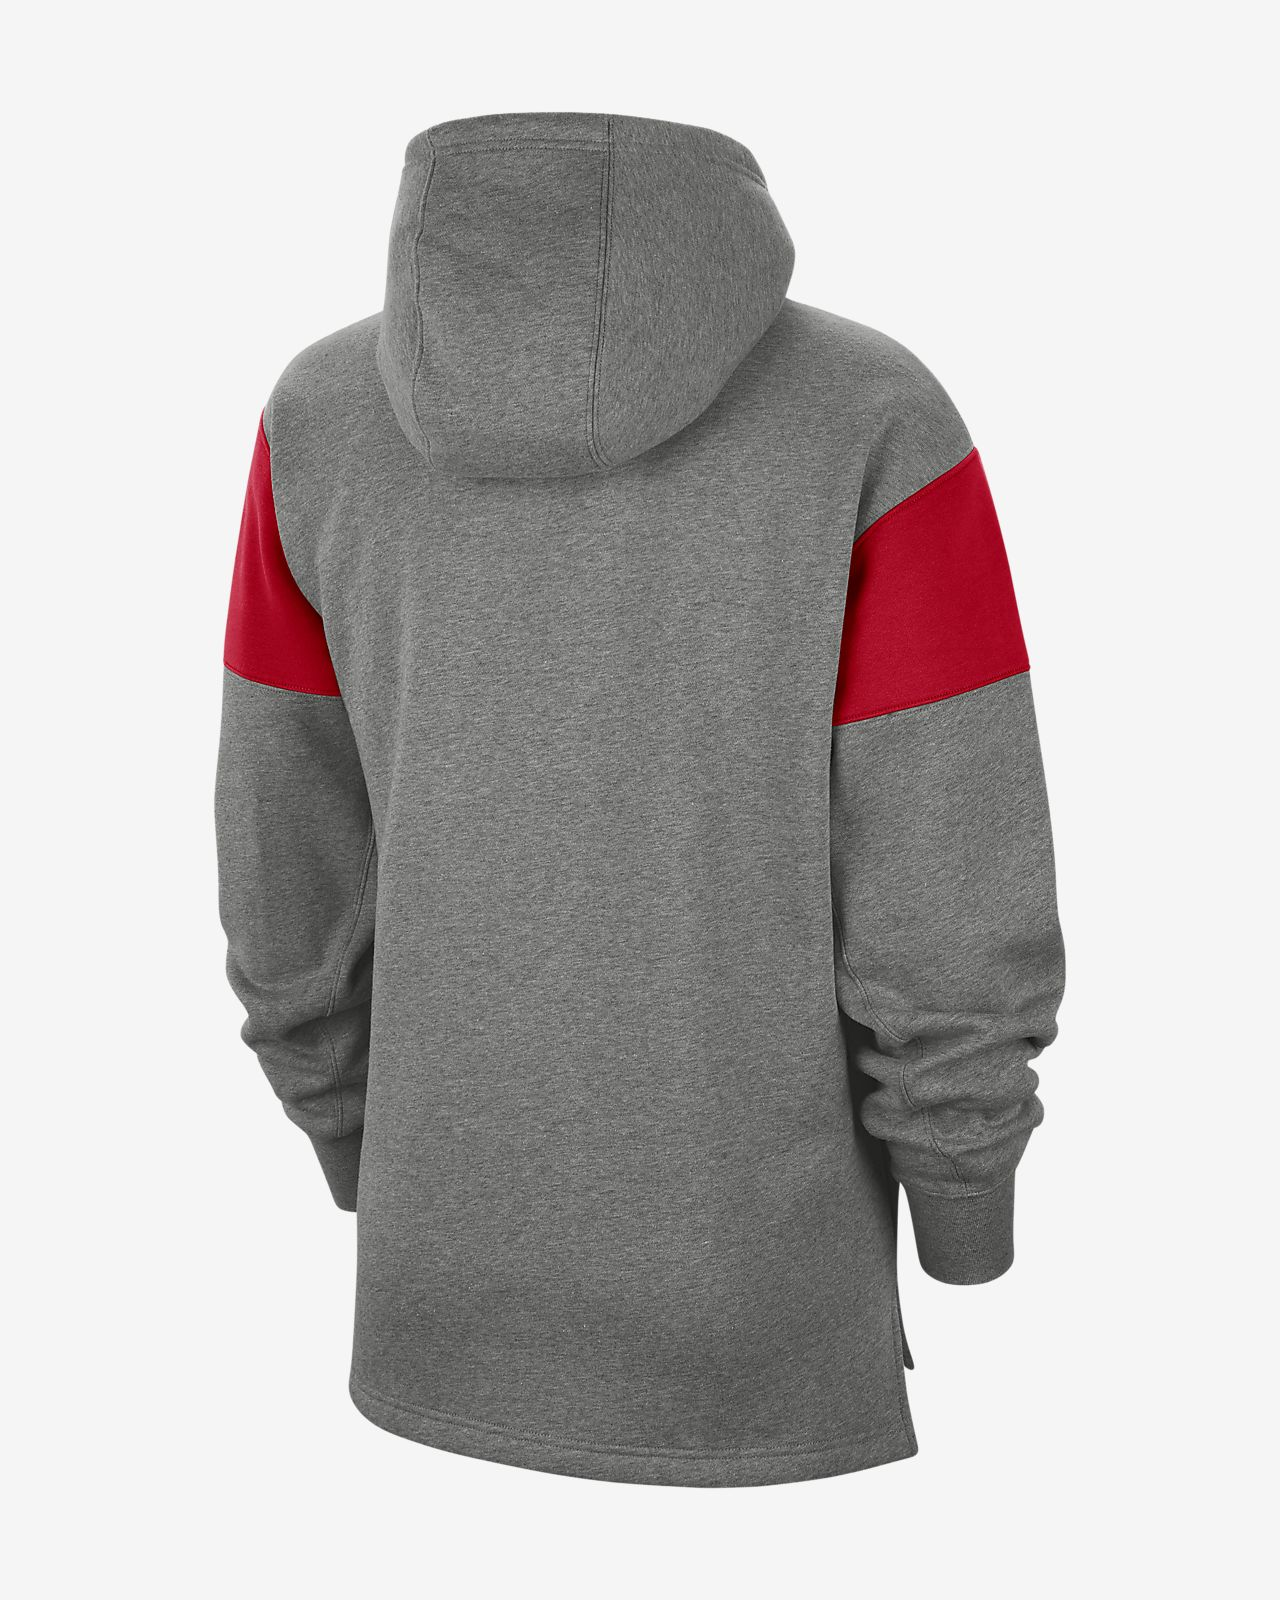 new product 46eb8 f10ee Nike (NFL Falcons) Men's Hoodie